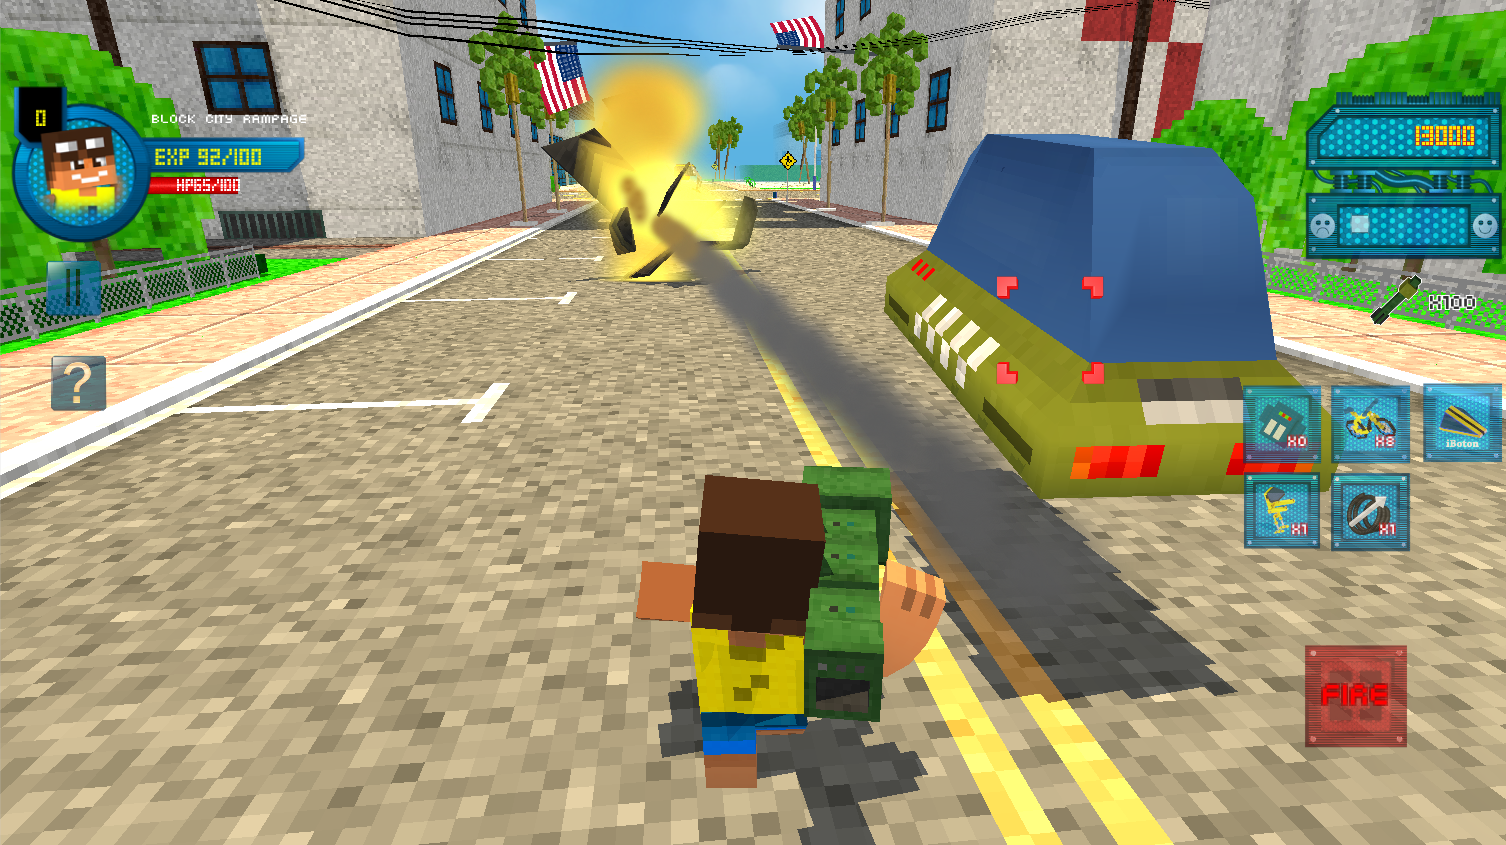 Block City Rampage Screenshot 7